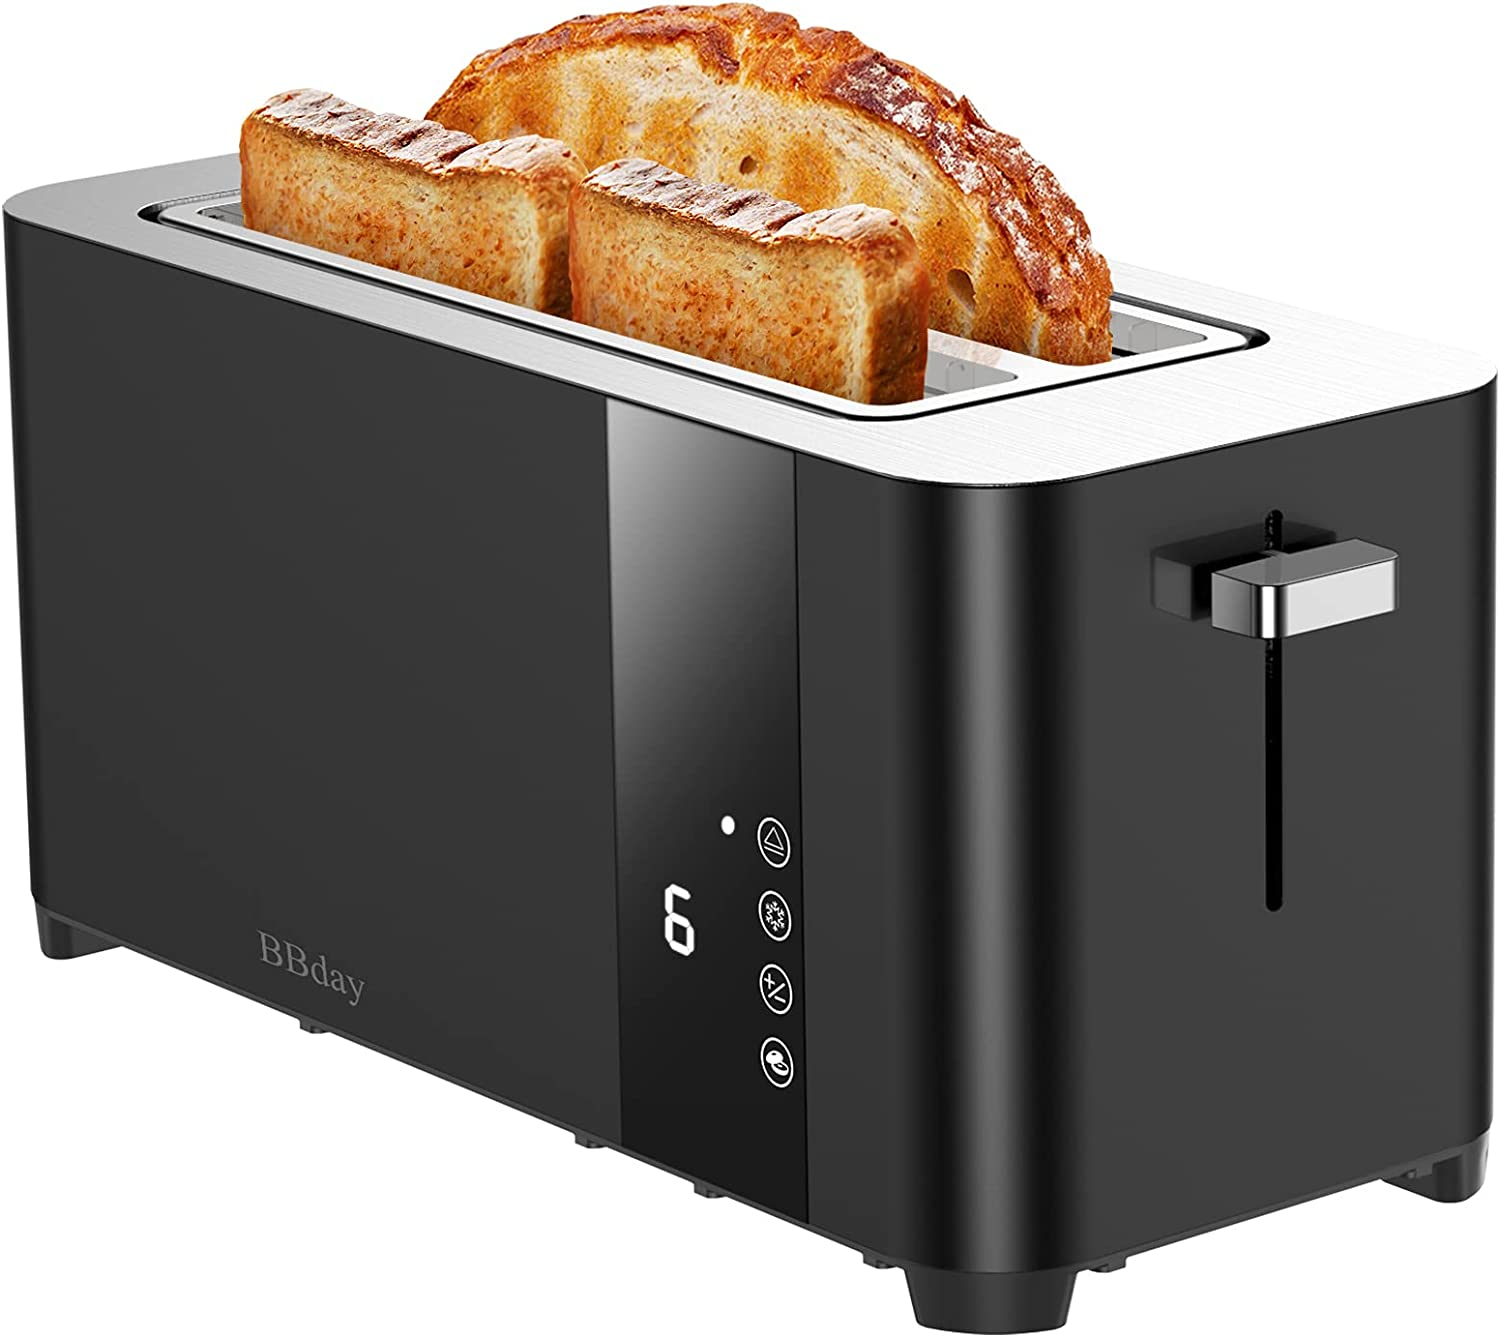 BBday Long Slot Toaster, 4 Slice Extra Wide Slots Stainless Steel Toasters,with LCD Display Touchscreen ,6 Bread Shade Settings, Defrost/Bagel/Cancel, Removable Crumb Tray, 1300W,Black